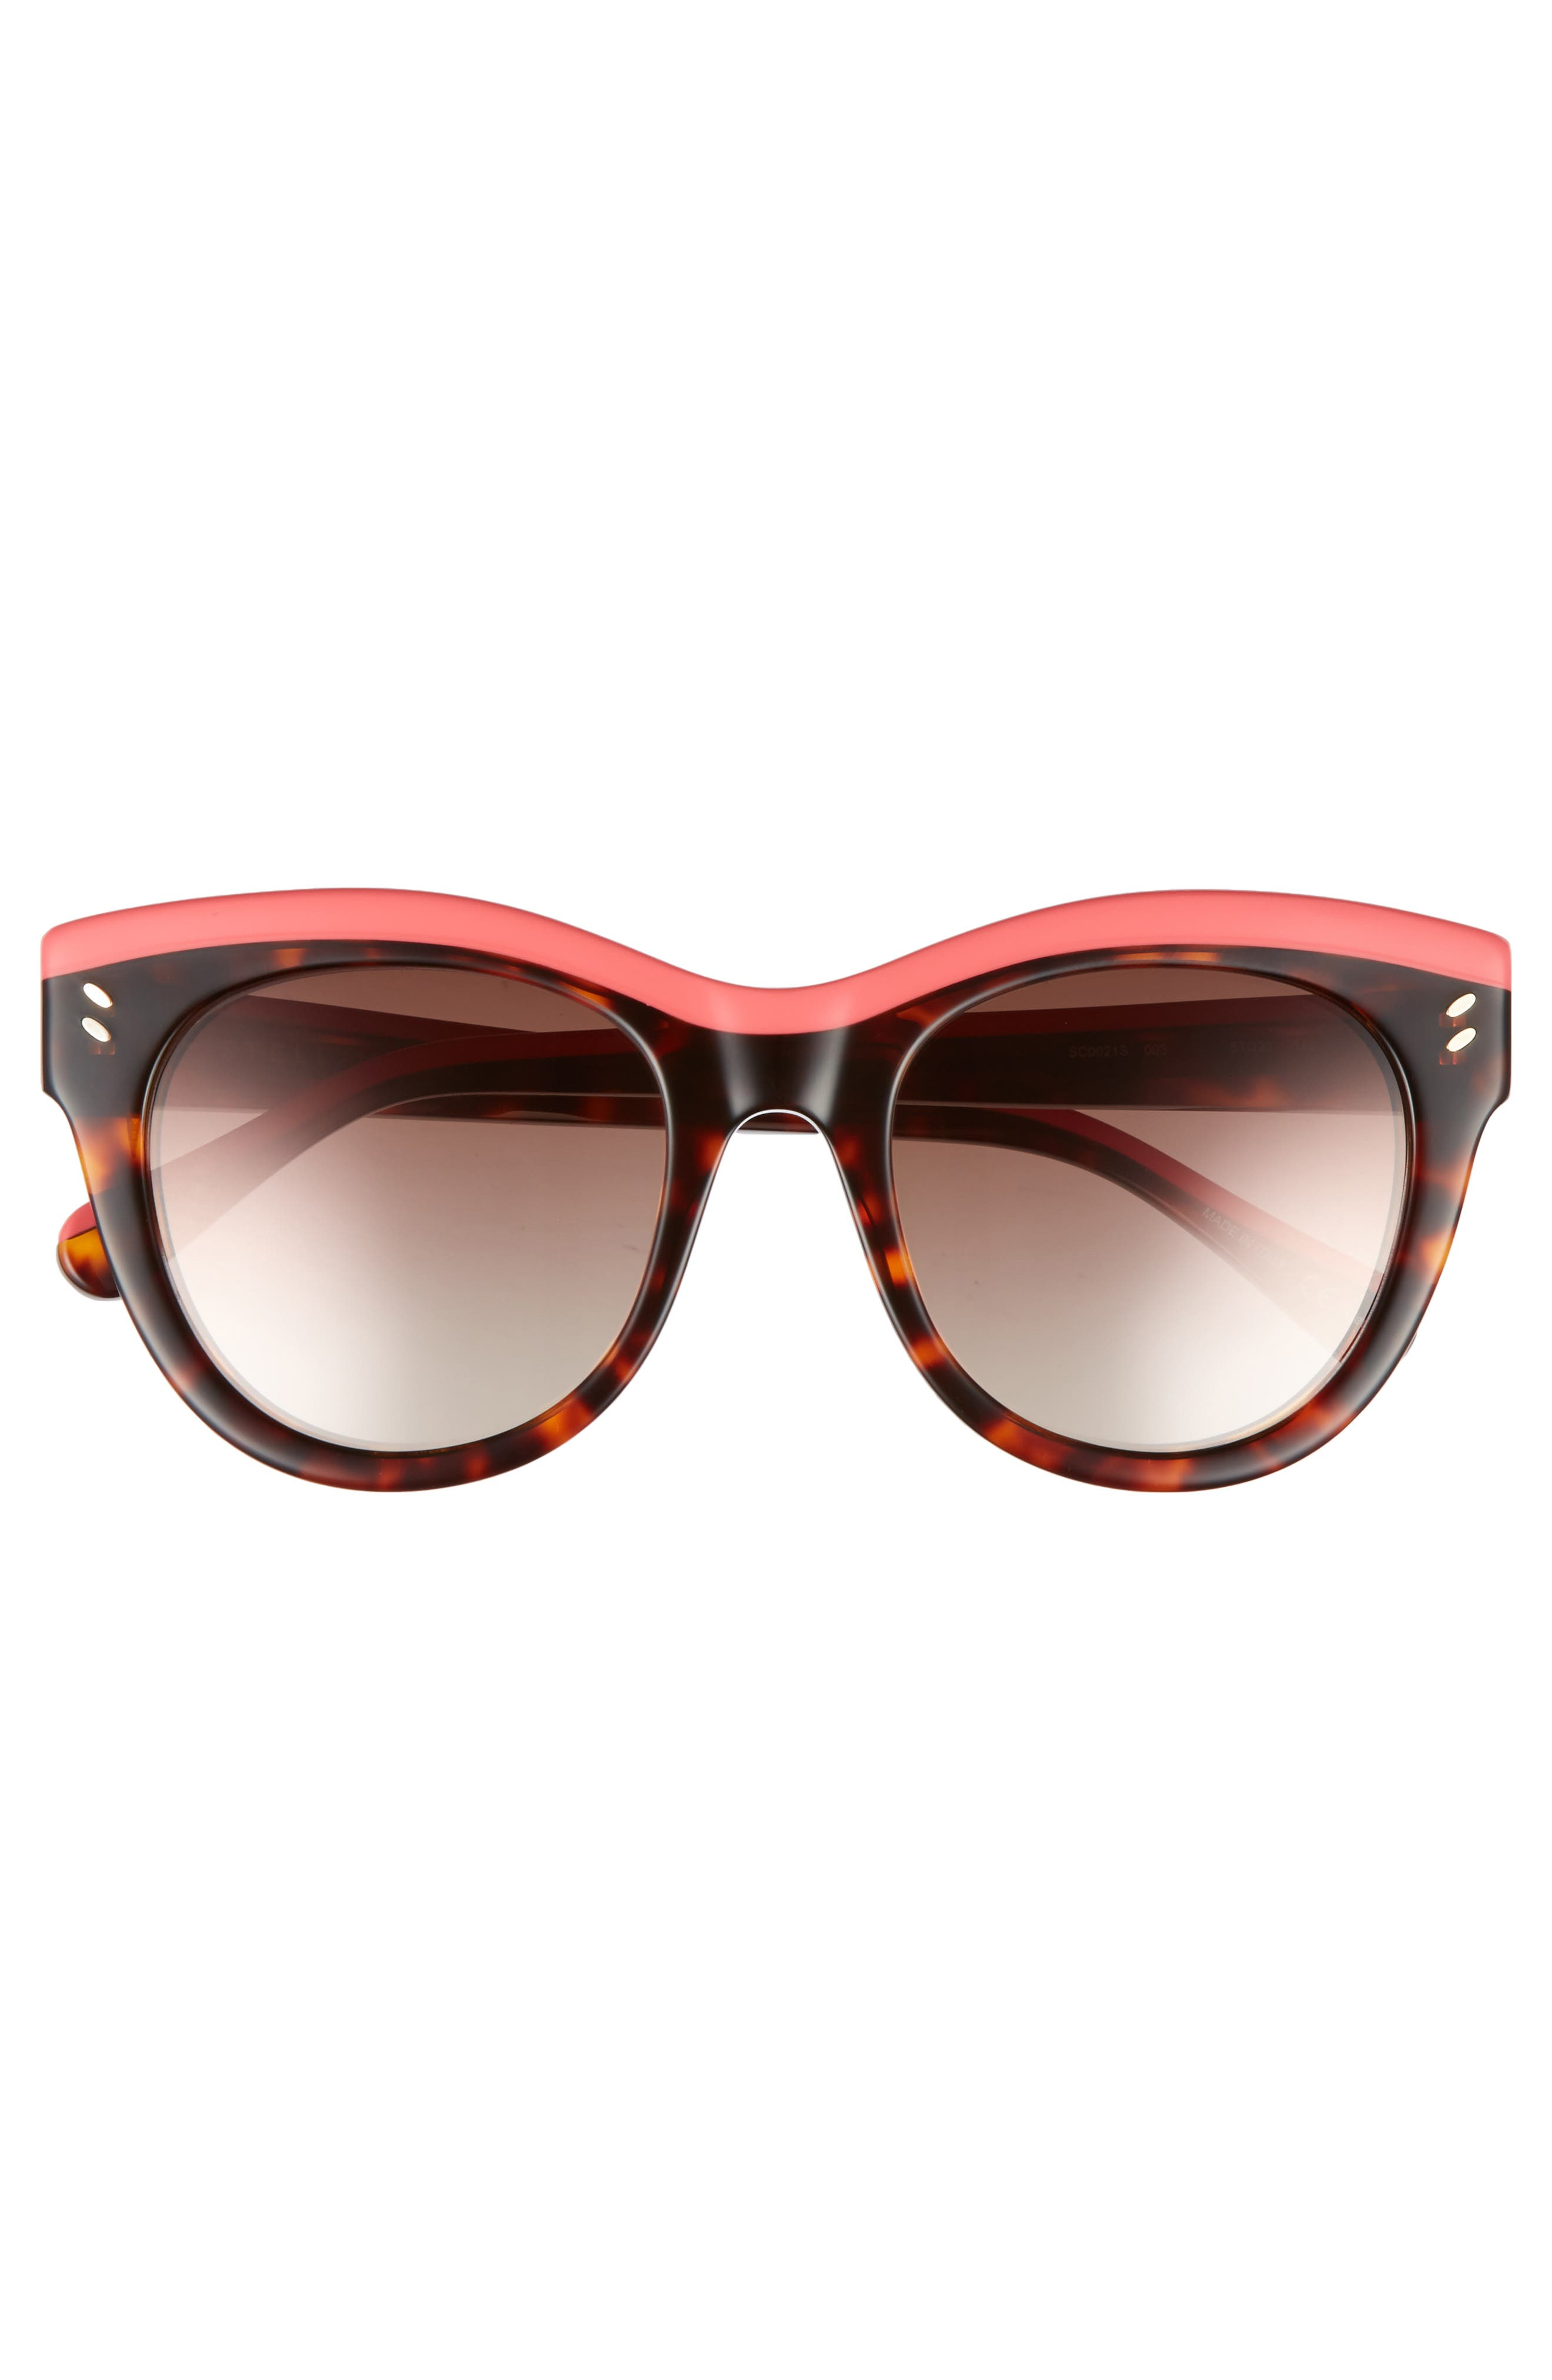 51mm Cat Eye Sunglasses,                             Alternate thumbnail 9, color,